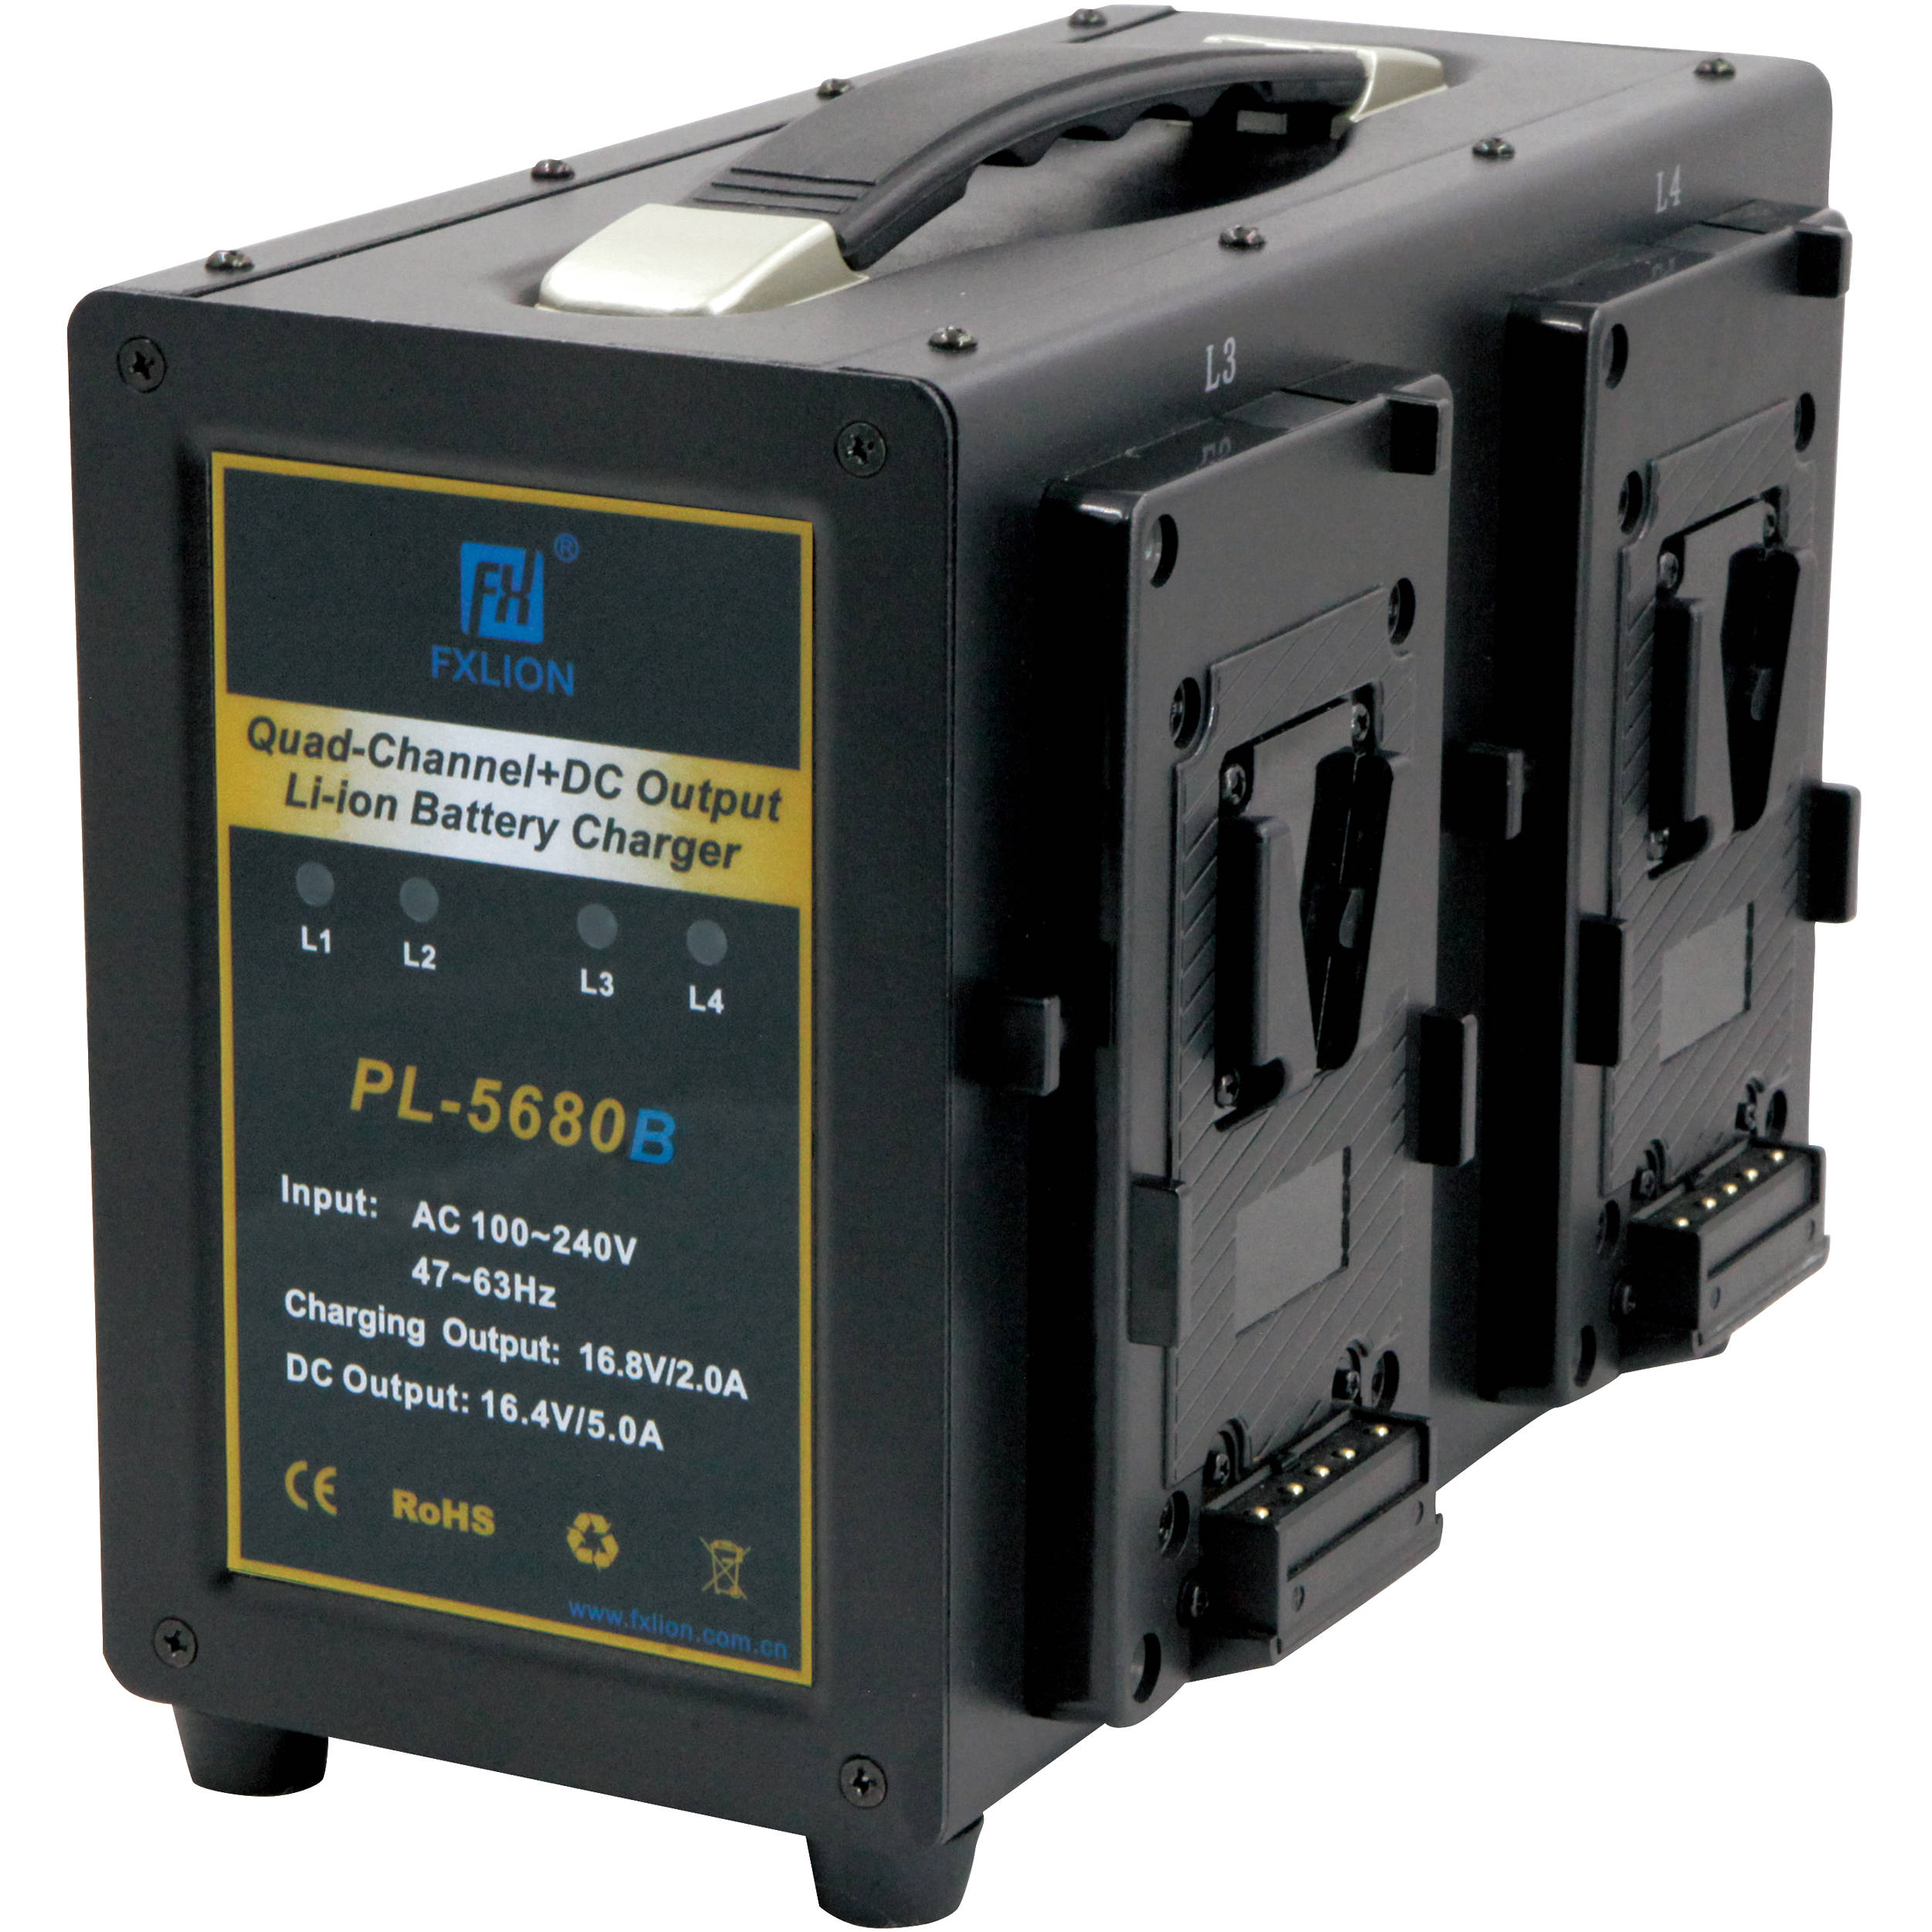 Fxlion 4 Channel V Mount Battery Charger with DC